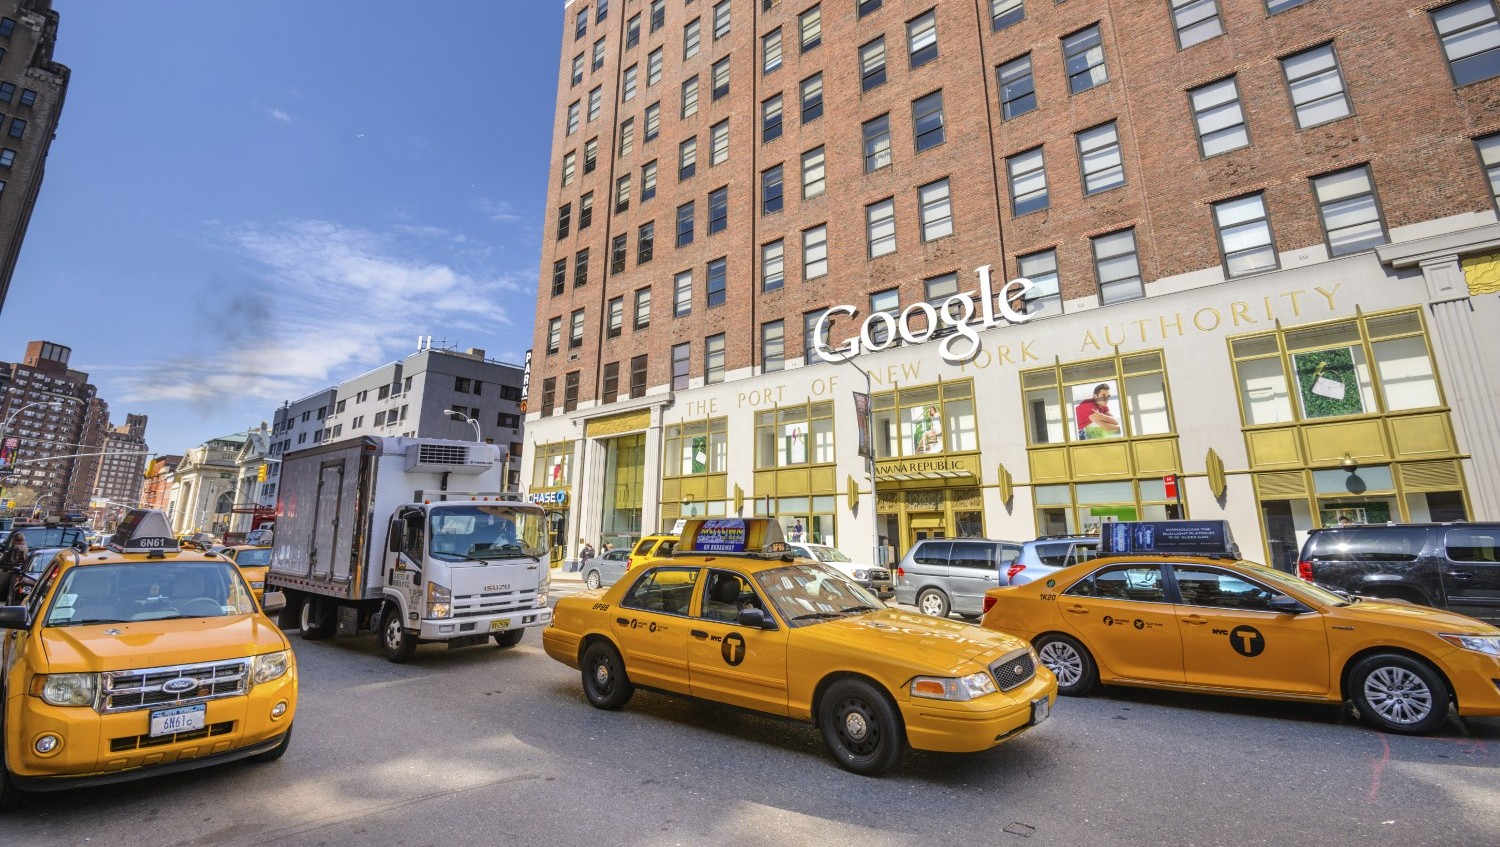 NEW YORK CITY - APRIL 16, 2013: Traffic passes the Google offices. The massive 3 million sq ft former Port Authority building was purchased by Google for 1.9 billion dollars in 2010.